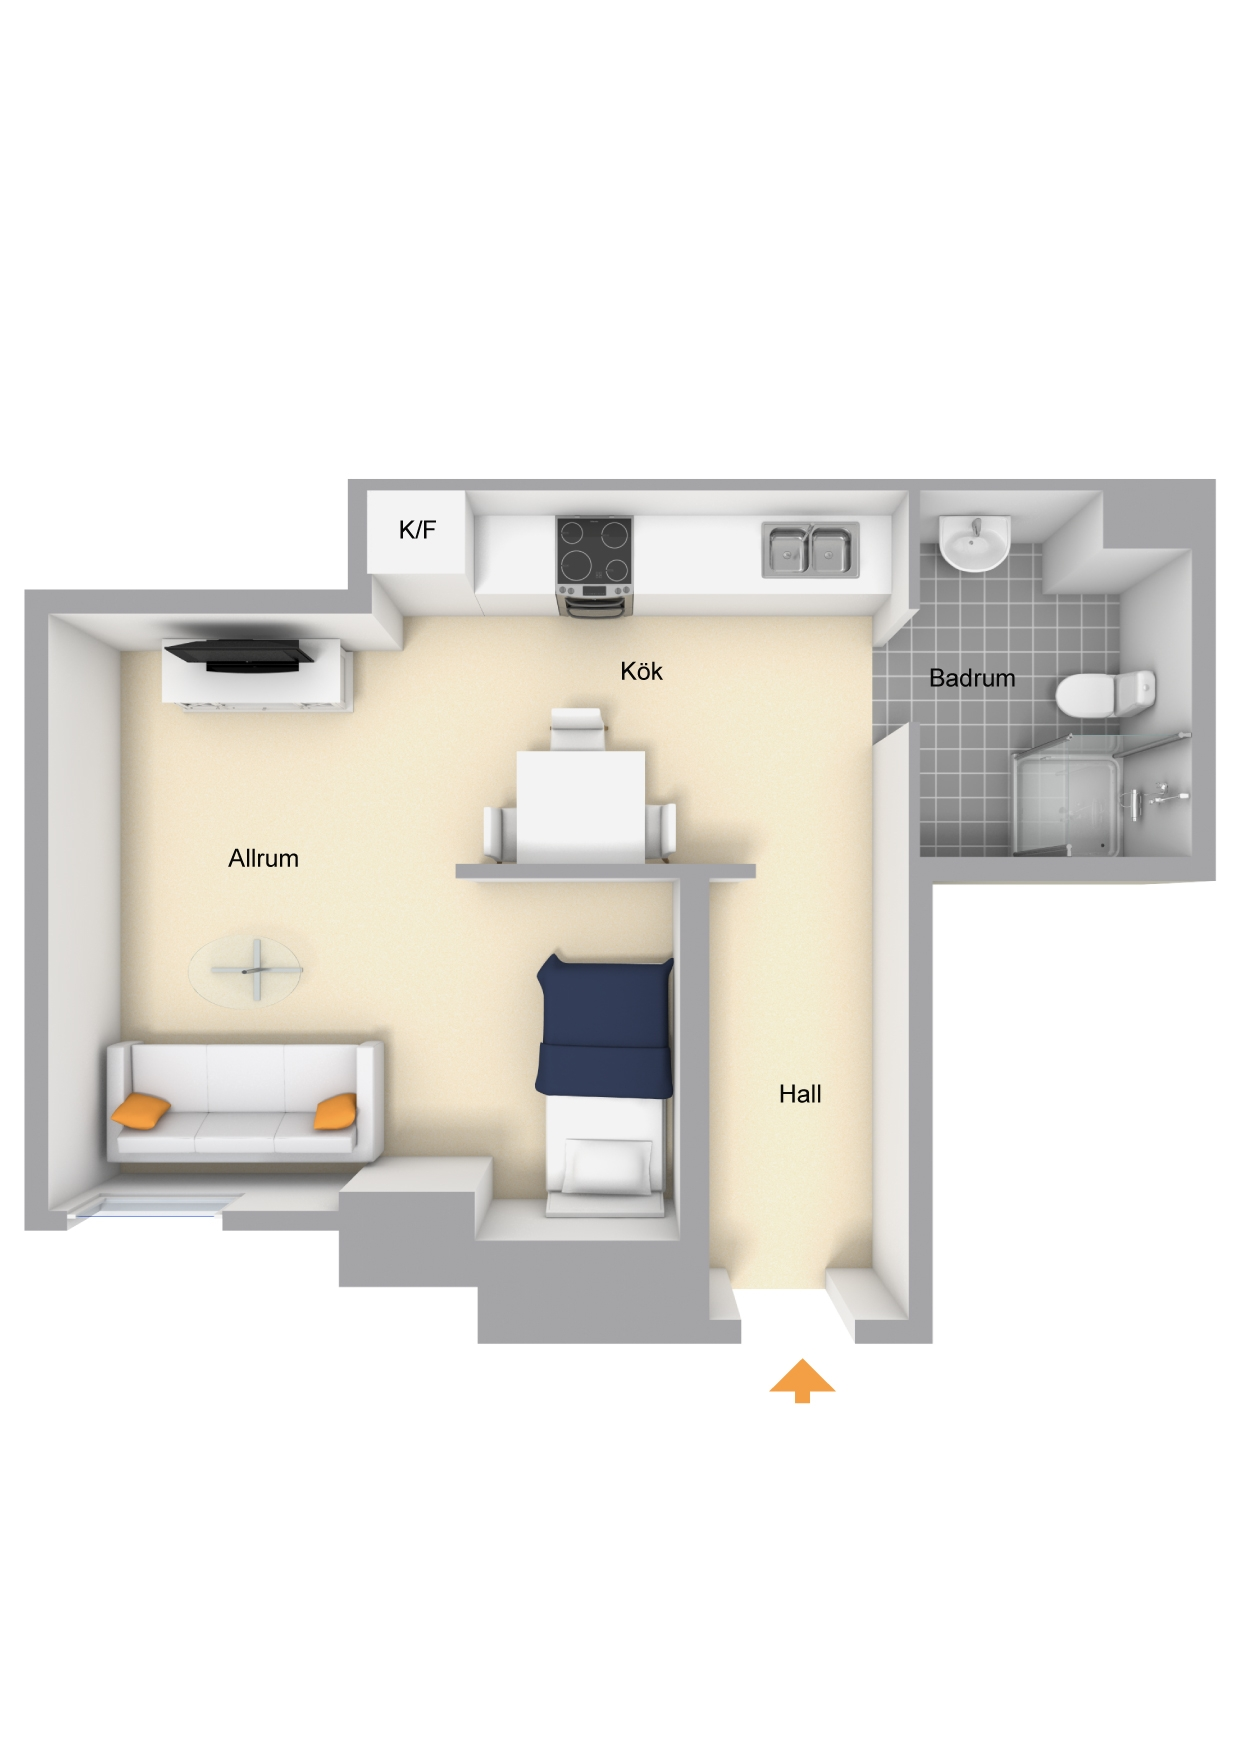 1000 images about 40m2 on pinterest apartments granny for Apartment design 40m2